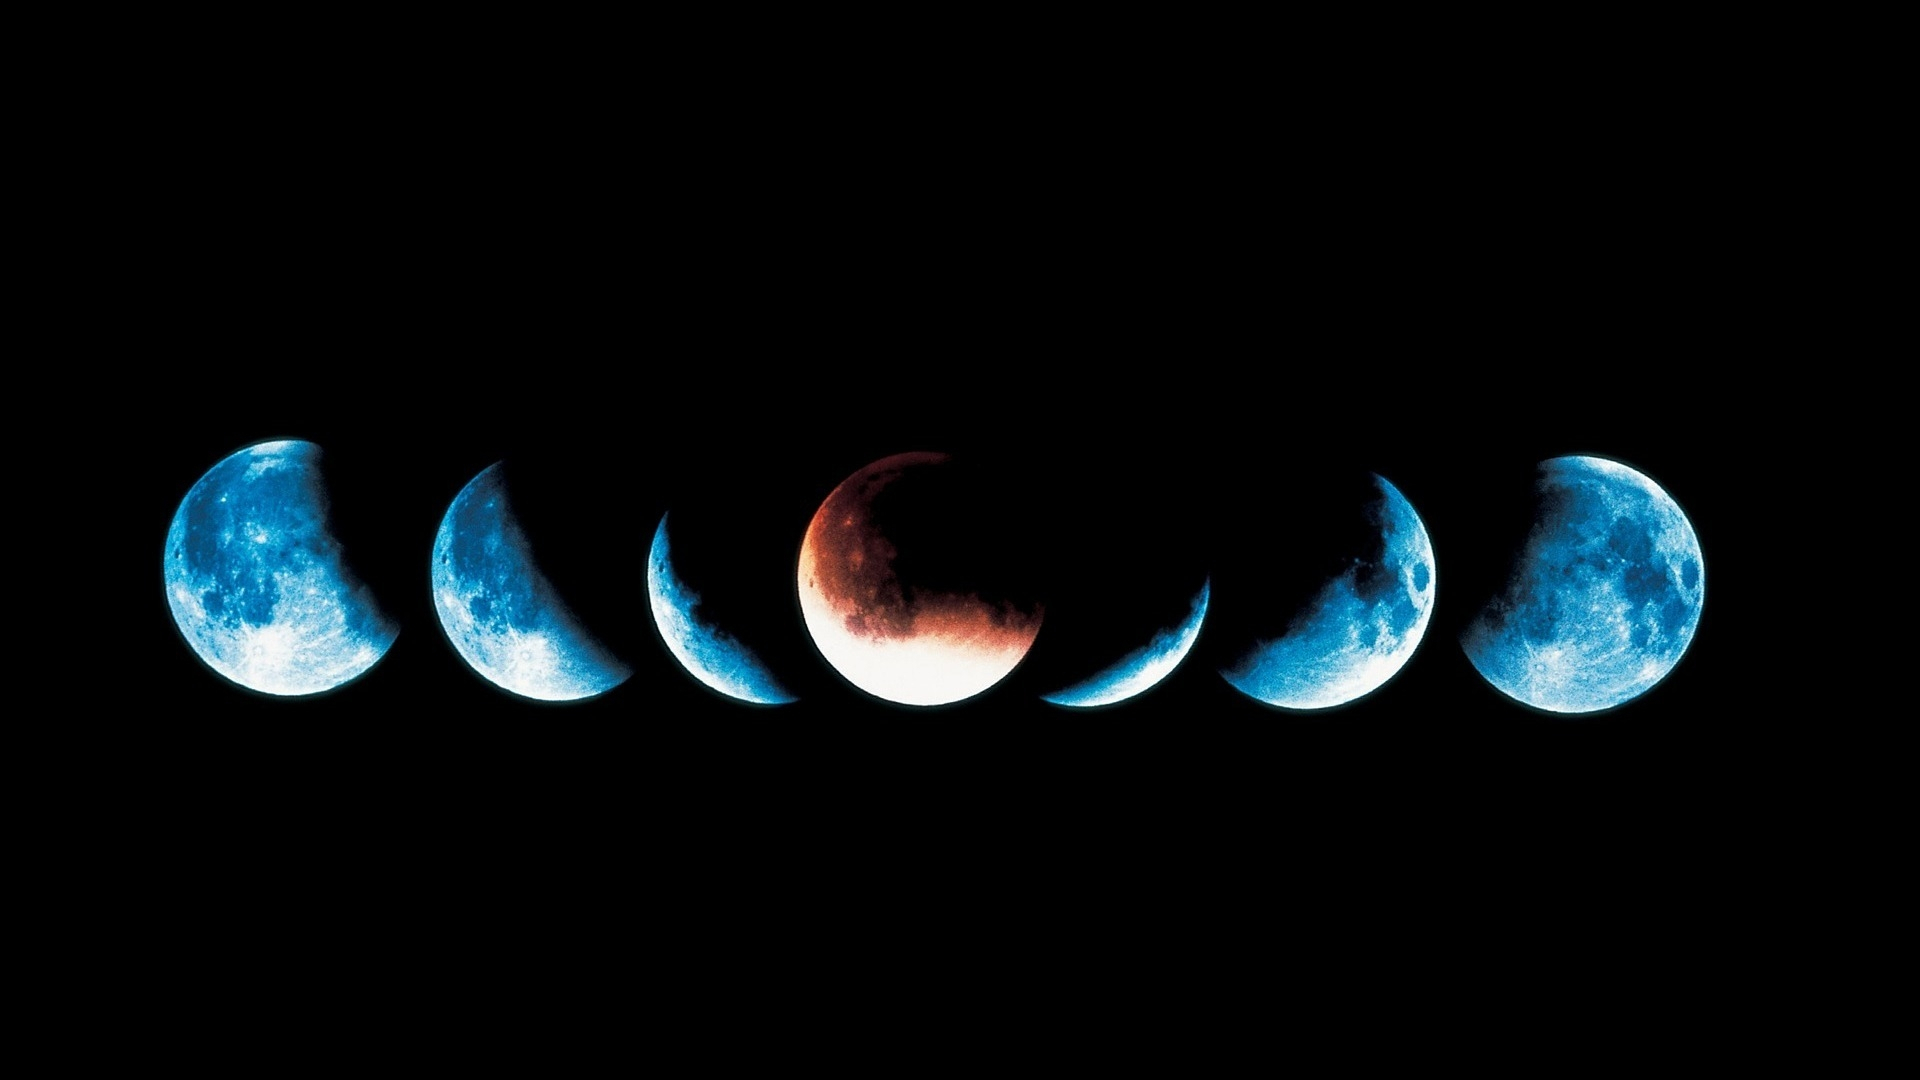 [%47+] Phases Of The Moon Wallpaper On Wallpapersafari|Moon Phases Desktop Wallpaper|Moon Phases Desktop Wallpaper%]